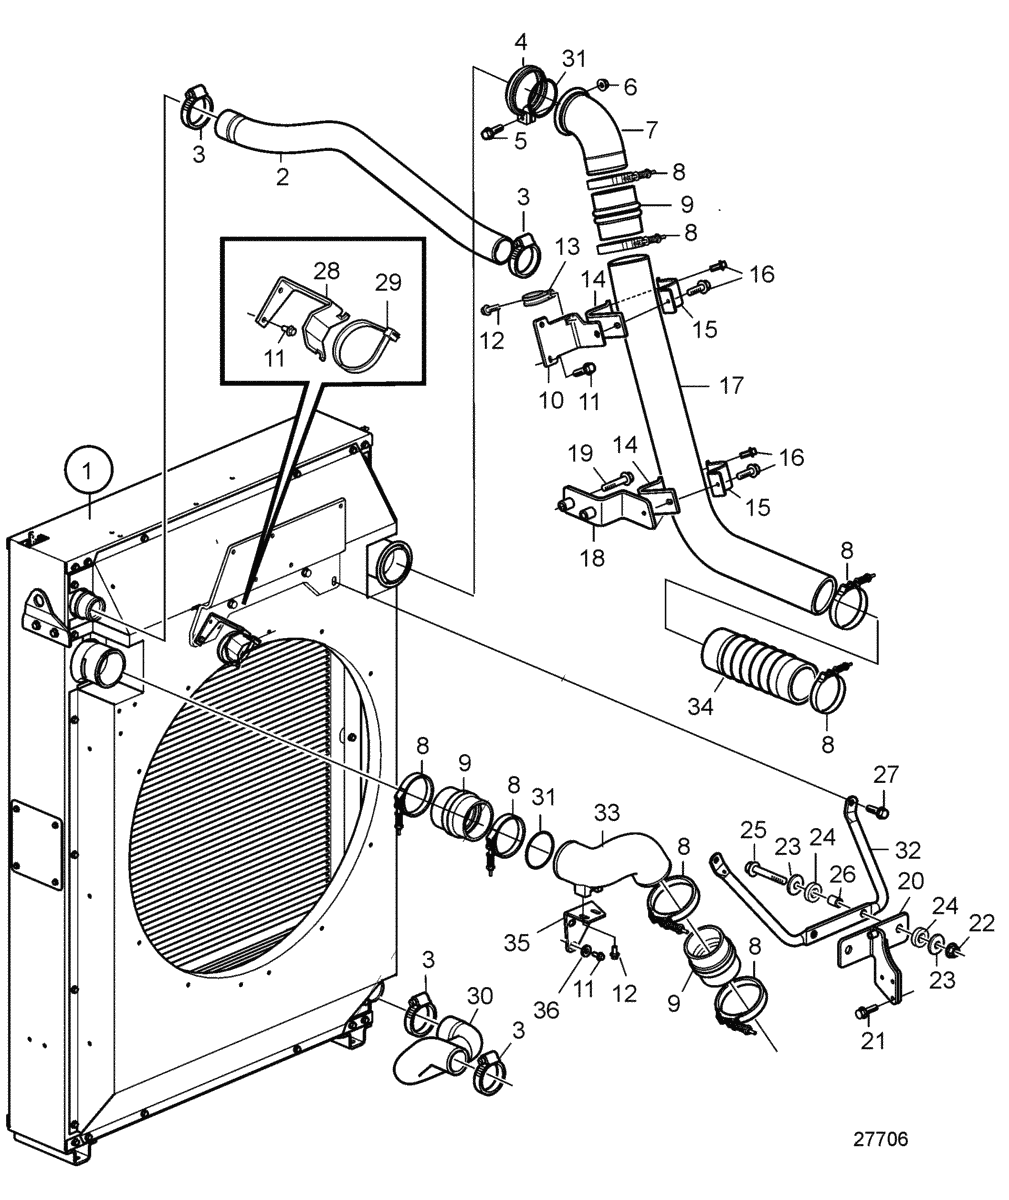 Radiator and Charge Air Cooler with Connections, Pushing, SN2016084274-SN2016087576